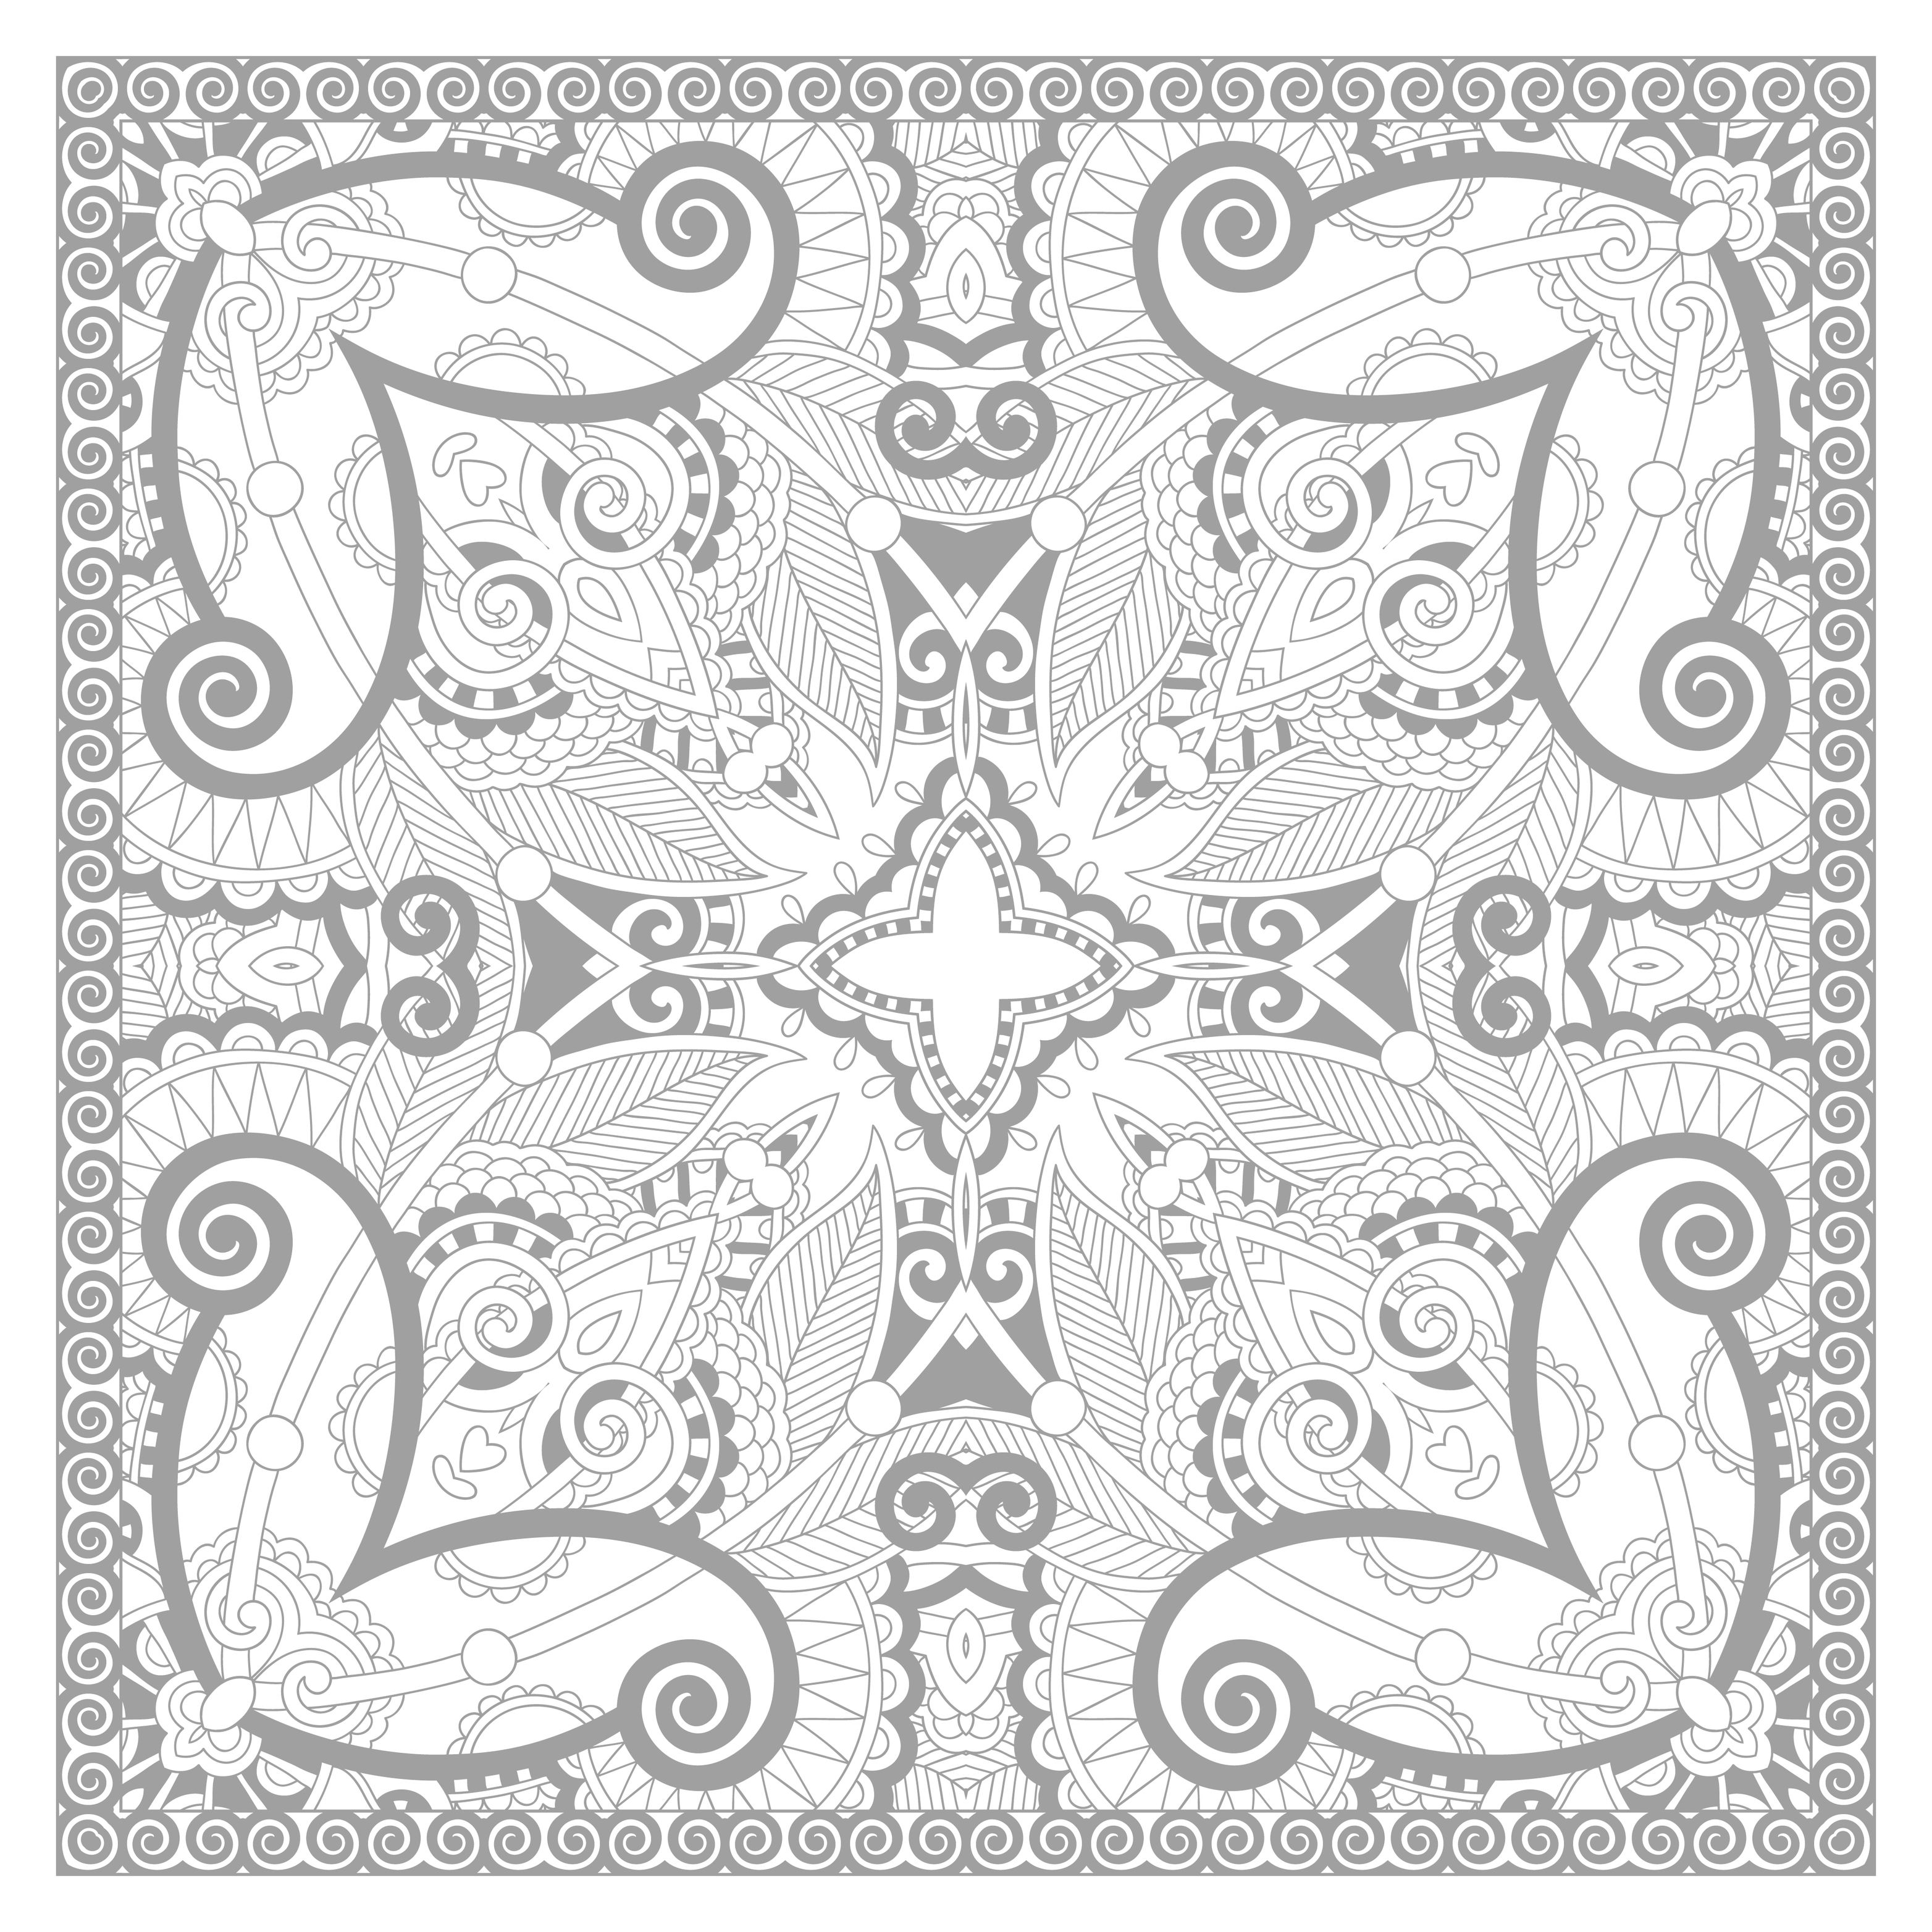 Very complex Square Mandala drawing full of details by Karakotsya. With this Mandala we reach the top of the difficulty ! Will you be able to color it in full perfectly ? Do whatever it takes to get rid of any distractions that may interfere with your coloring.